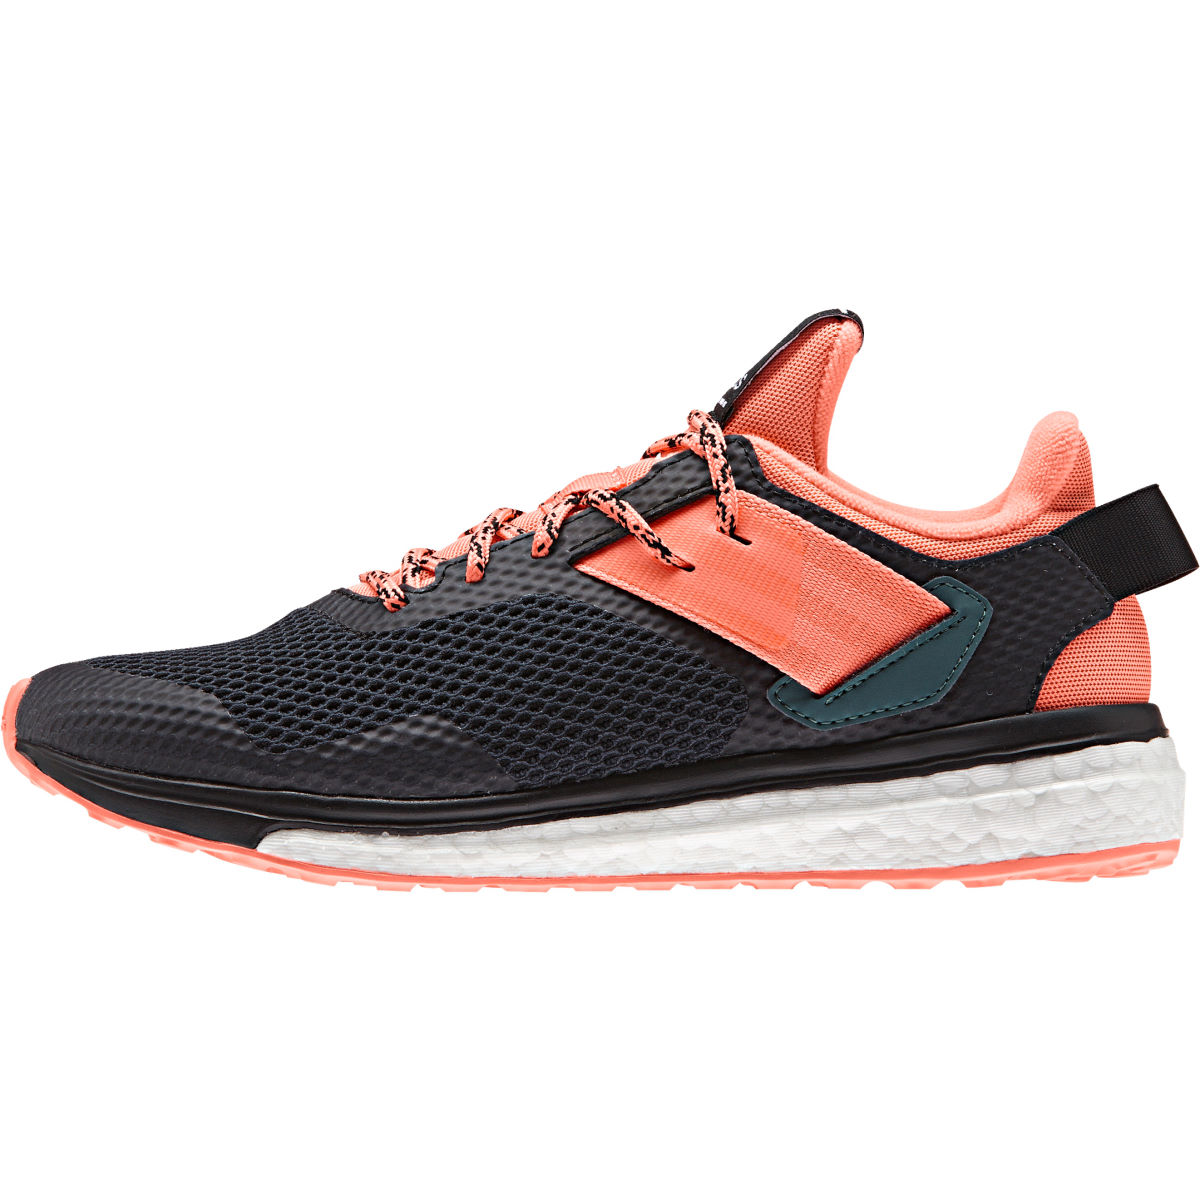 Adidas Womens Response Boost 3 Shoes (AW16)   Cushion Running Shoes